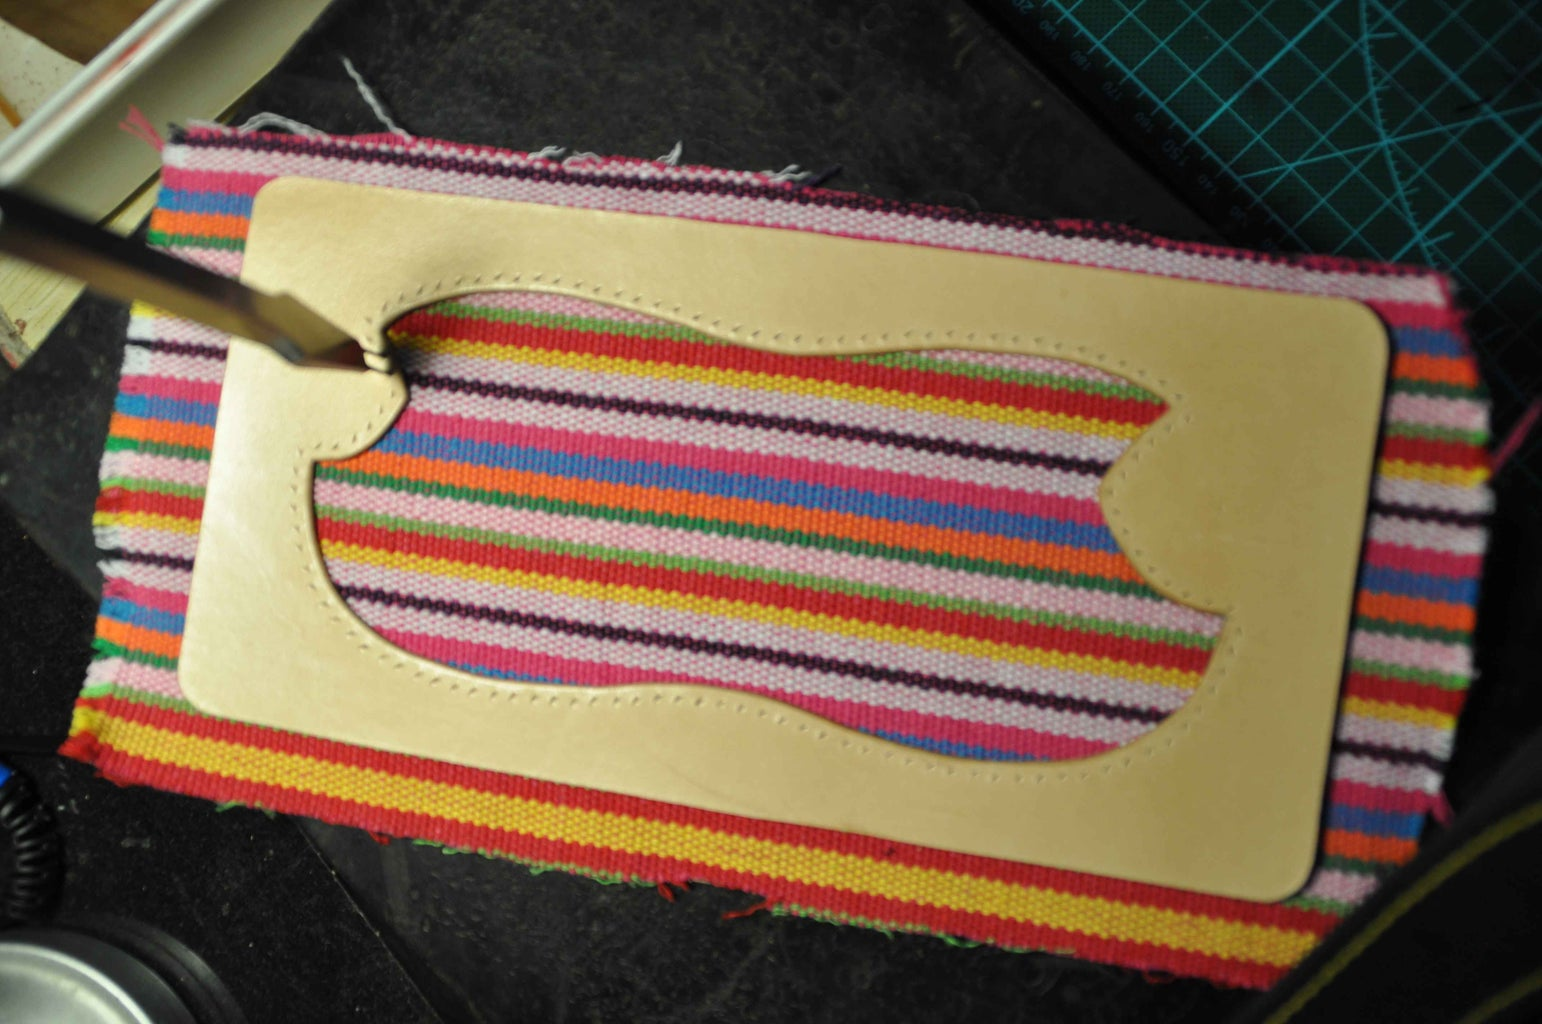 You Can Punch Holes and Sew Then Together Now. After Sewing, Cut Off the Redundant Part.